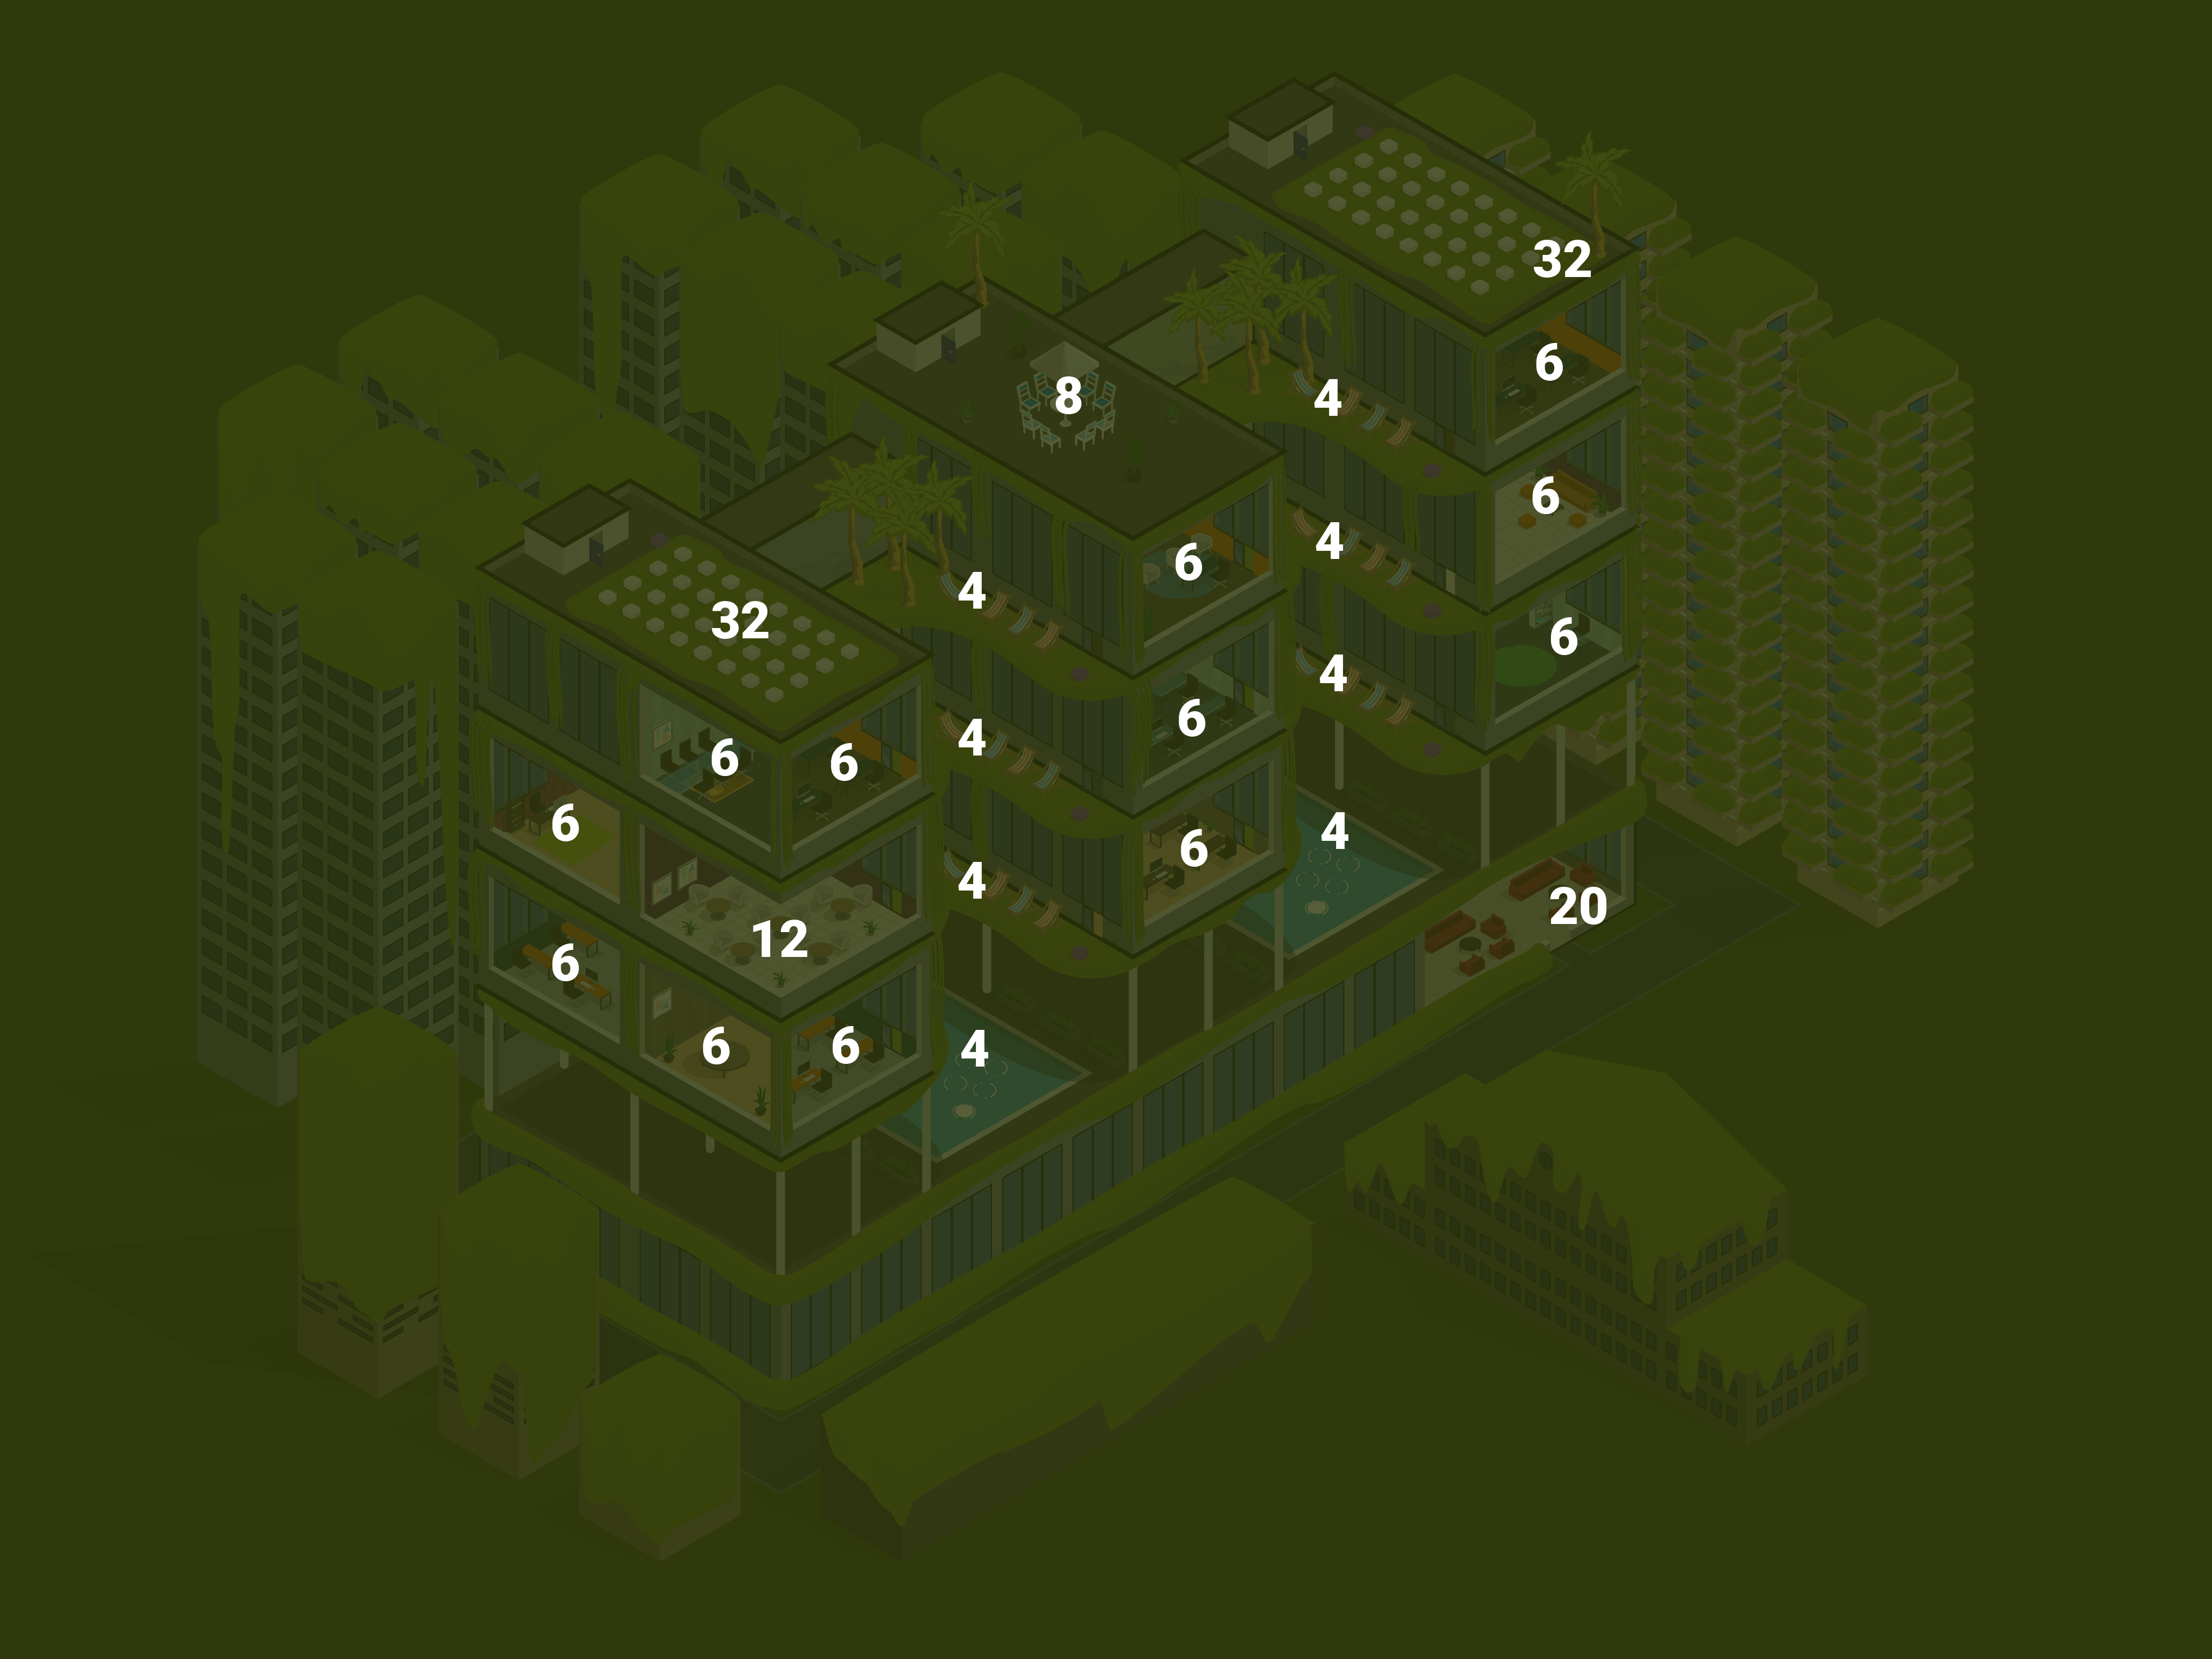 Jungle_Building_-_Room_Capacities.png